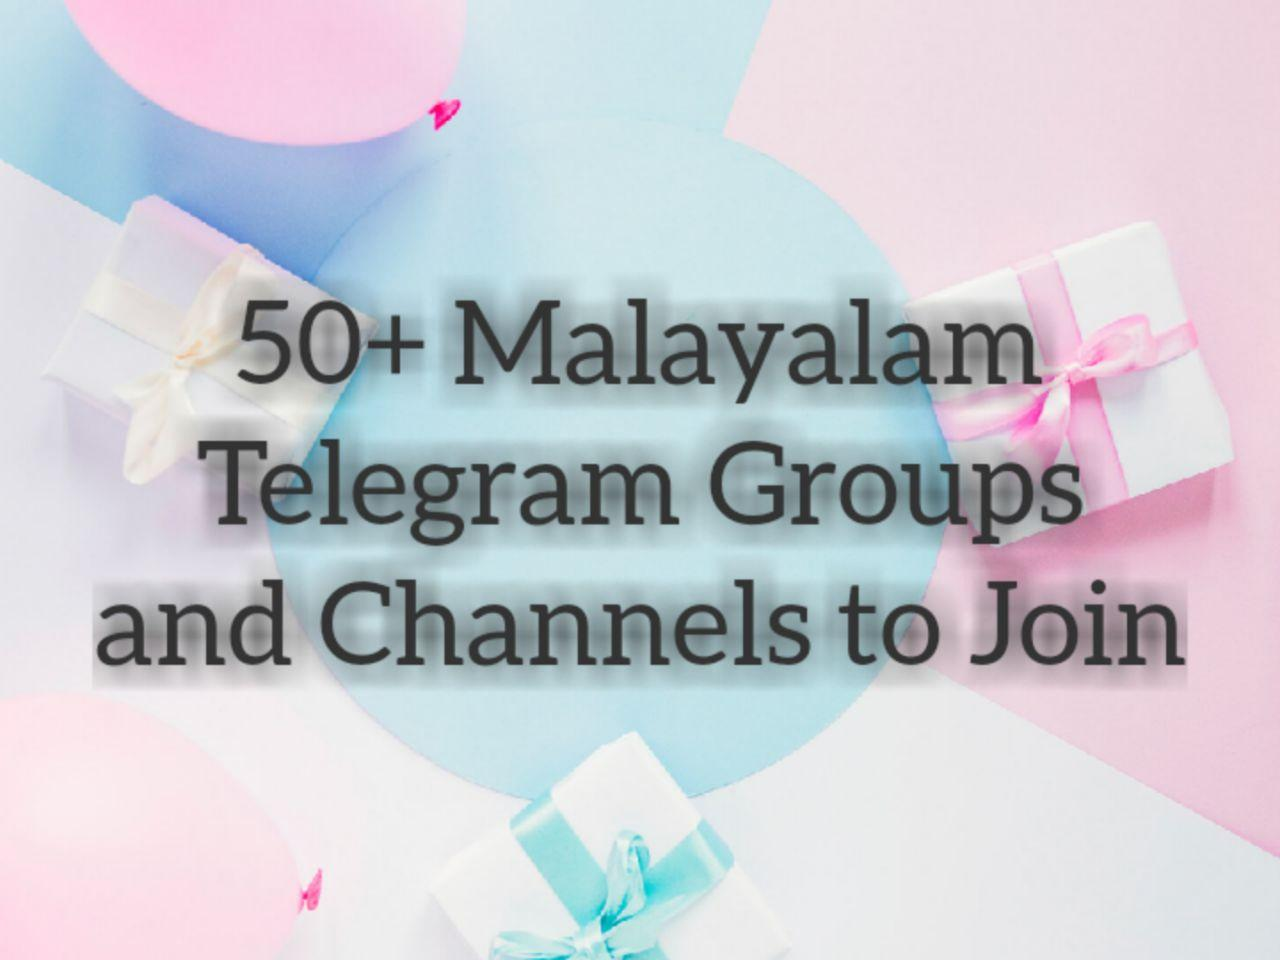 Malayalam Telegram Channels and Groups Link to Join